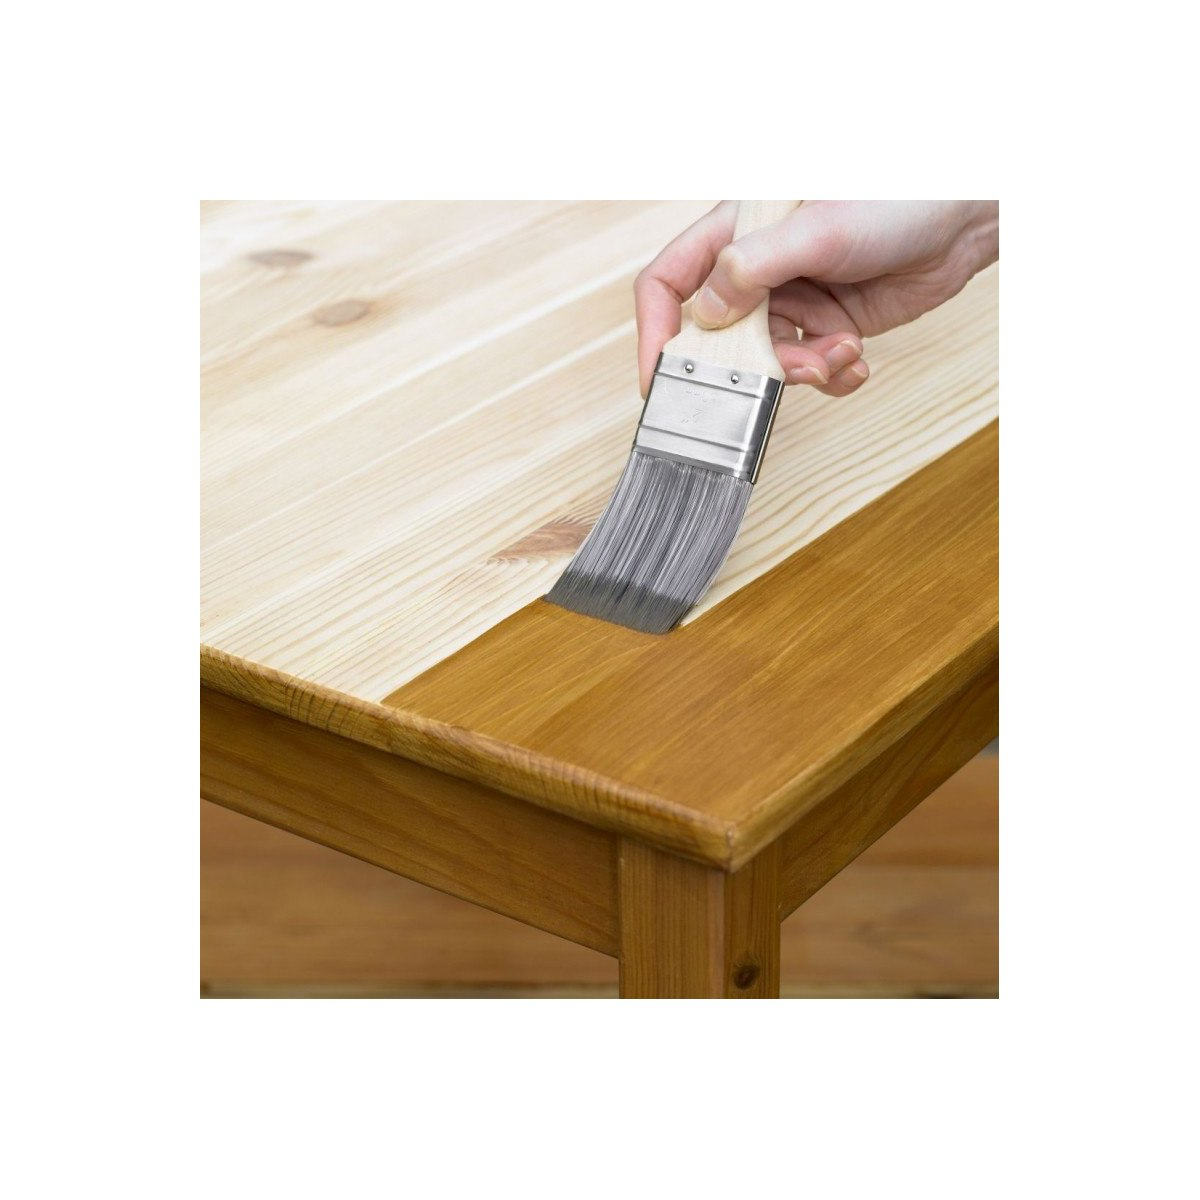 Applying Danish Oil to Wooden Furniture